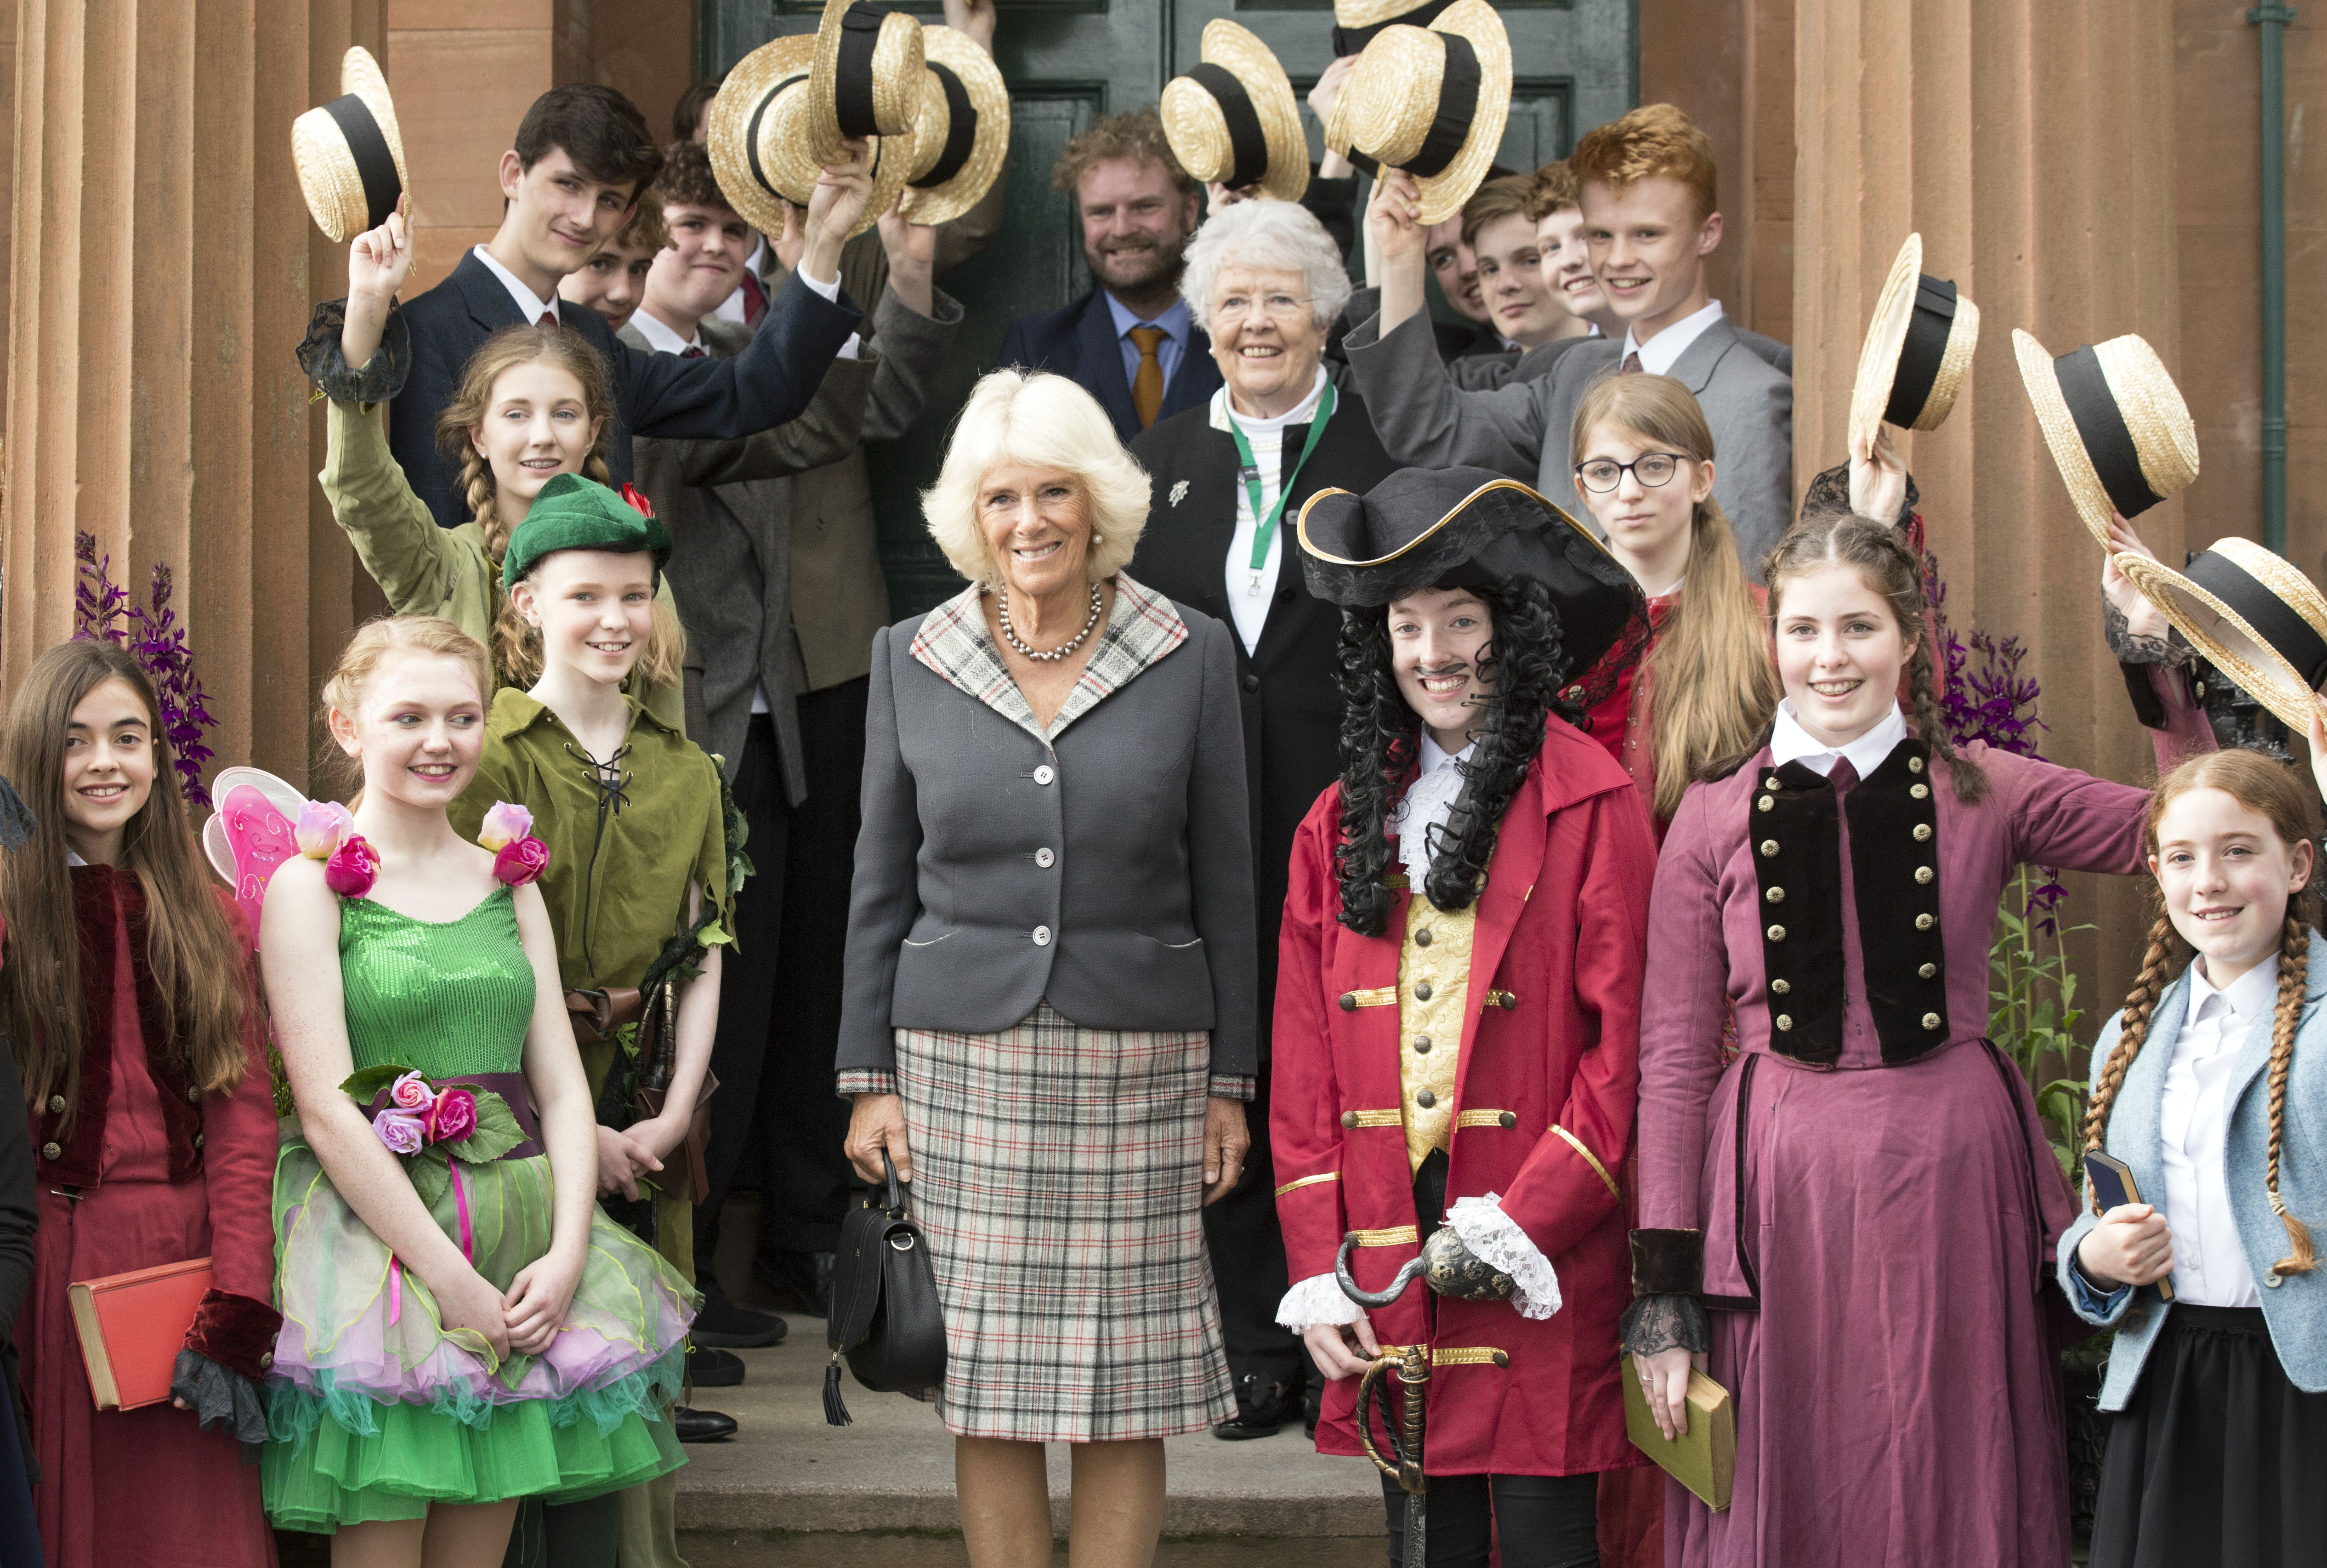 The Duchess of Rothesay visits Moat Brae House